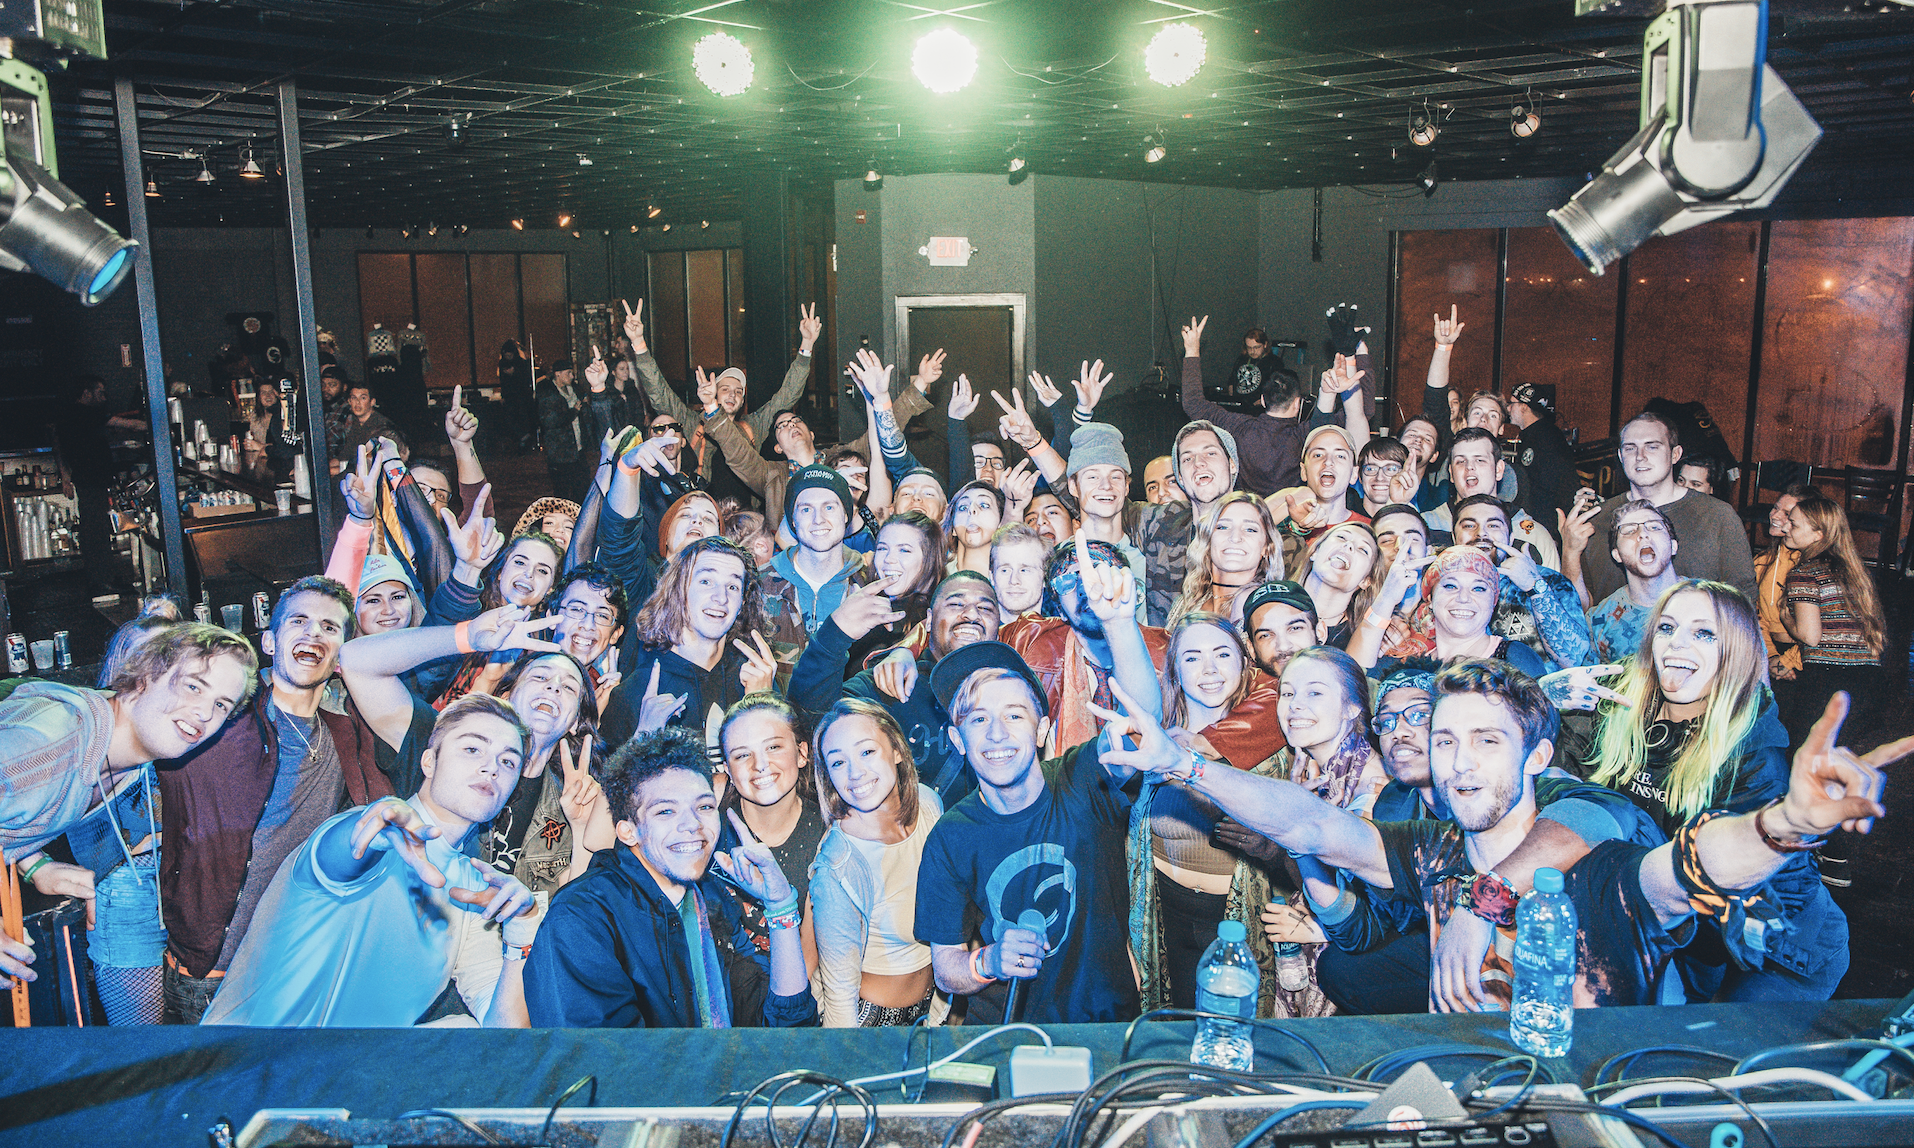 Samsara Showcase @ The Stache, Grand Rapids - Family Photo